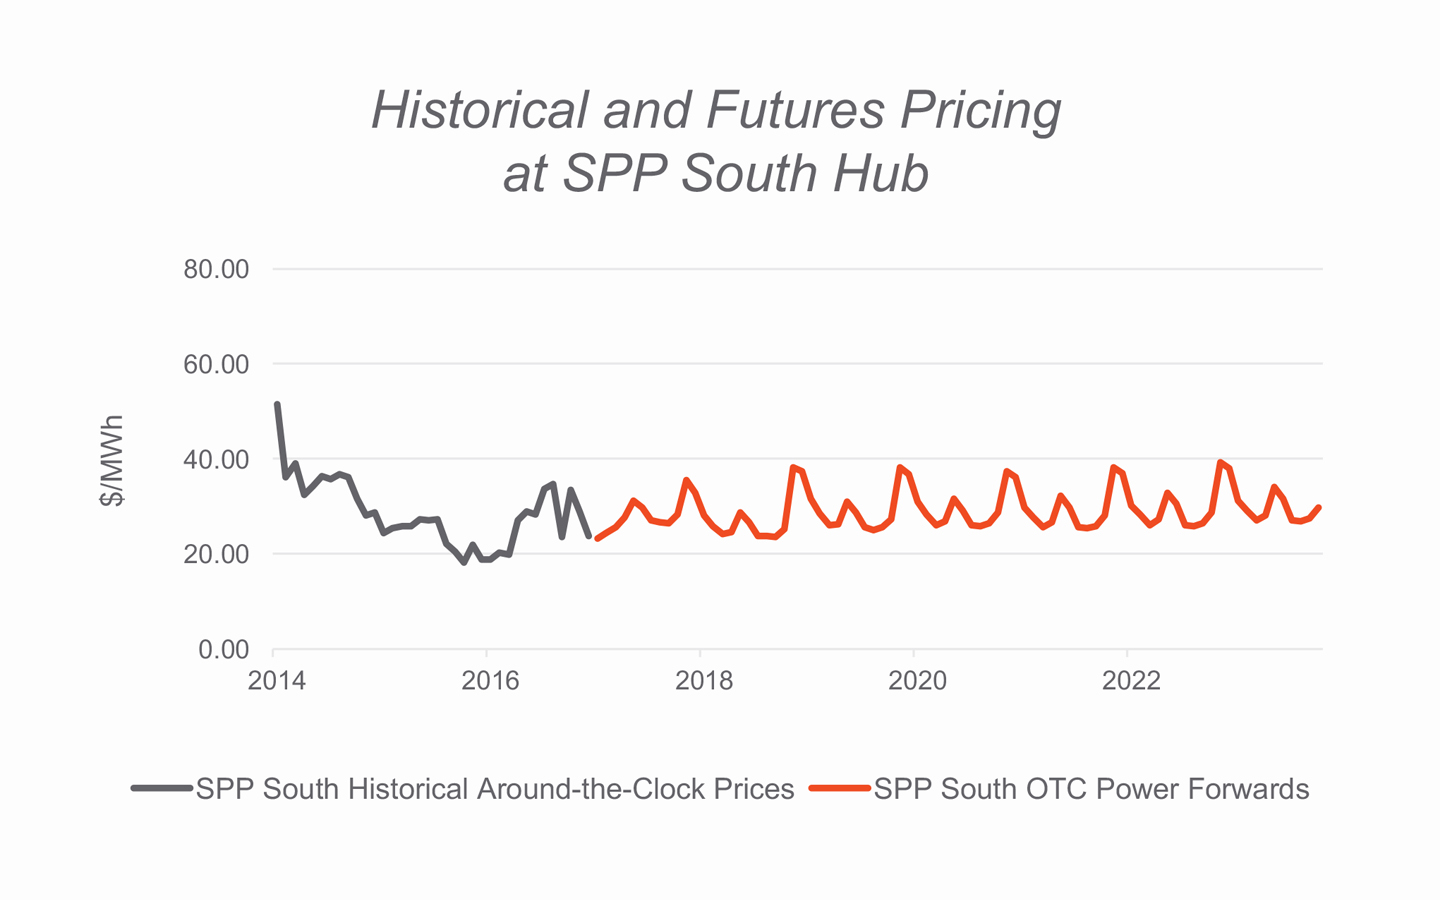 Historical and Futures Pricing at SPP South Hub